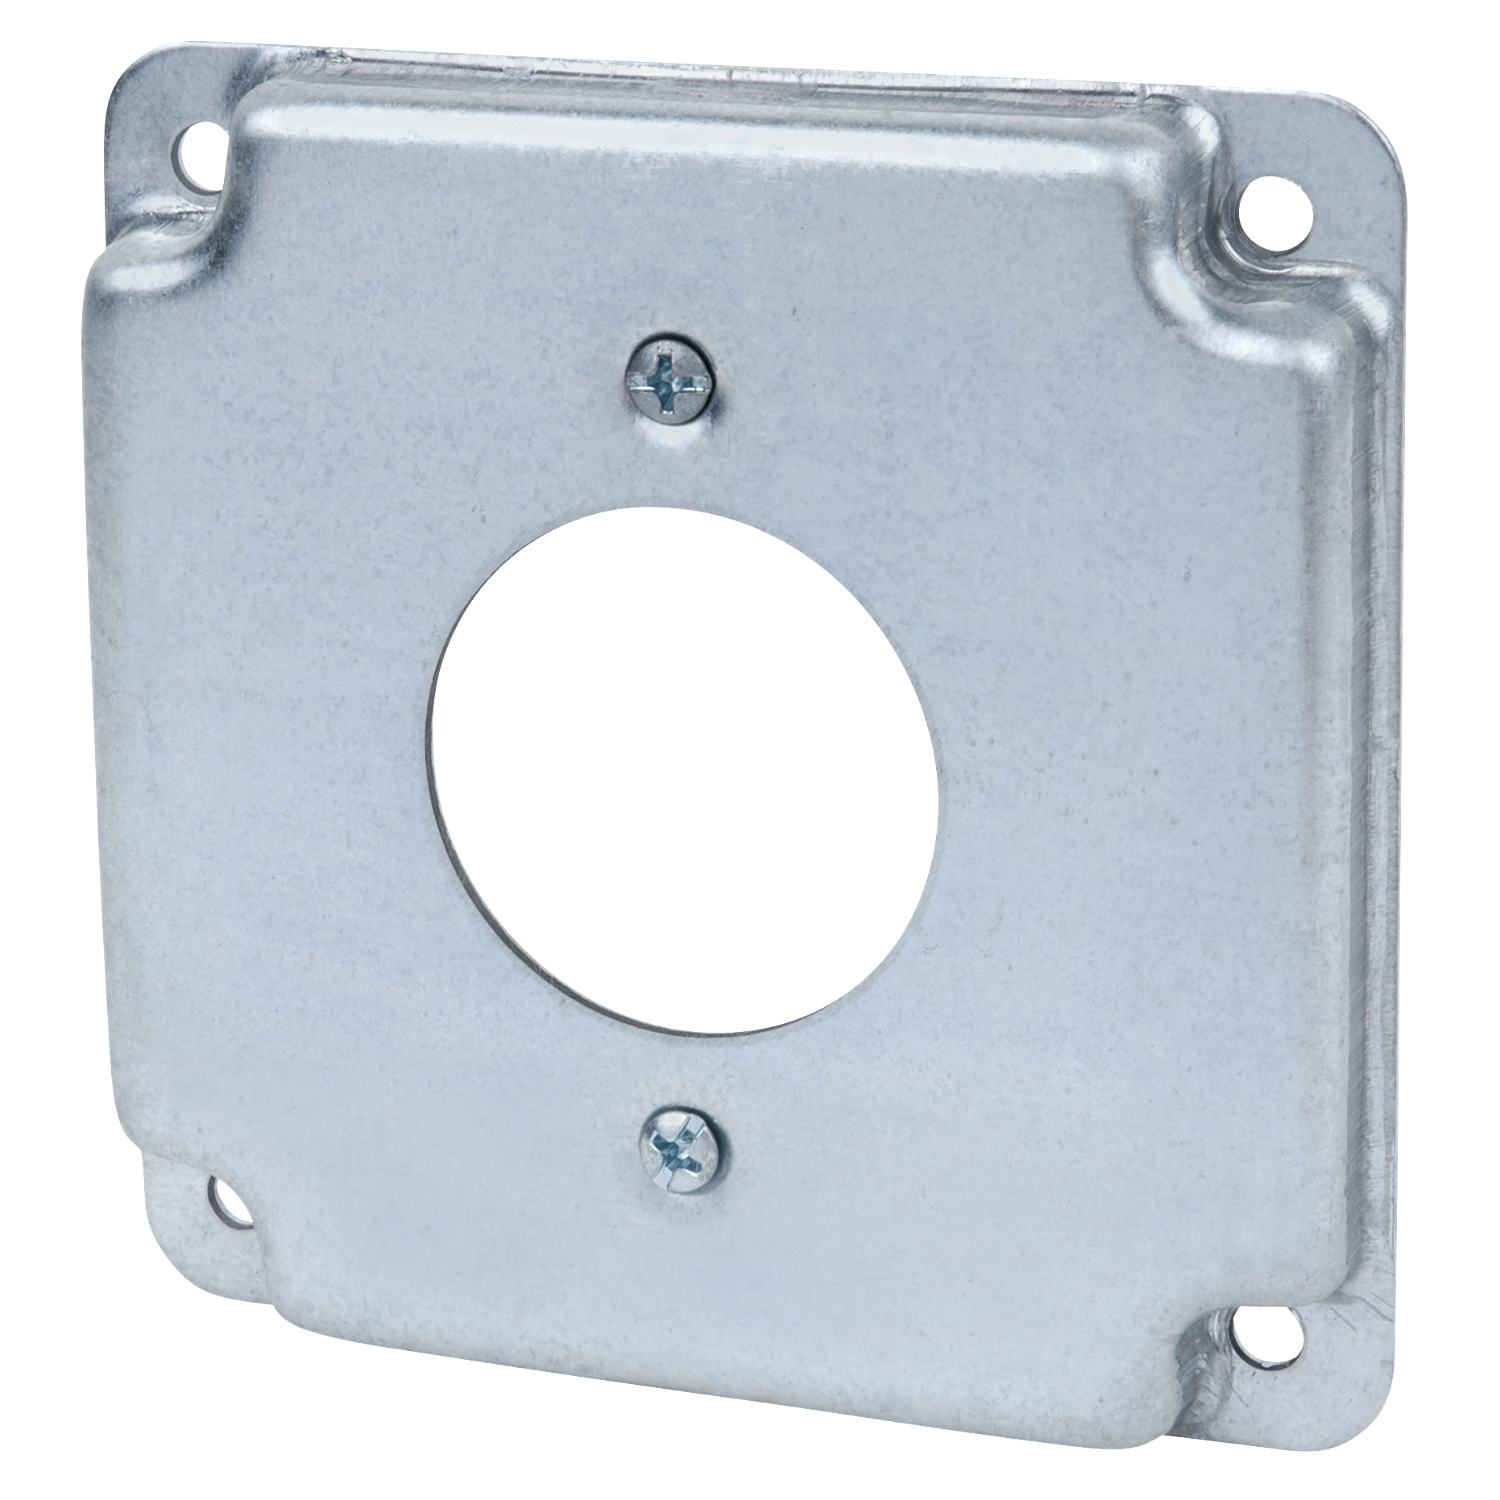 STEEL-CITY RS4 STEEL COVER USE 4-WIRE TWIST-LOCK SINGLE RECEPTACLE